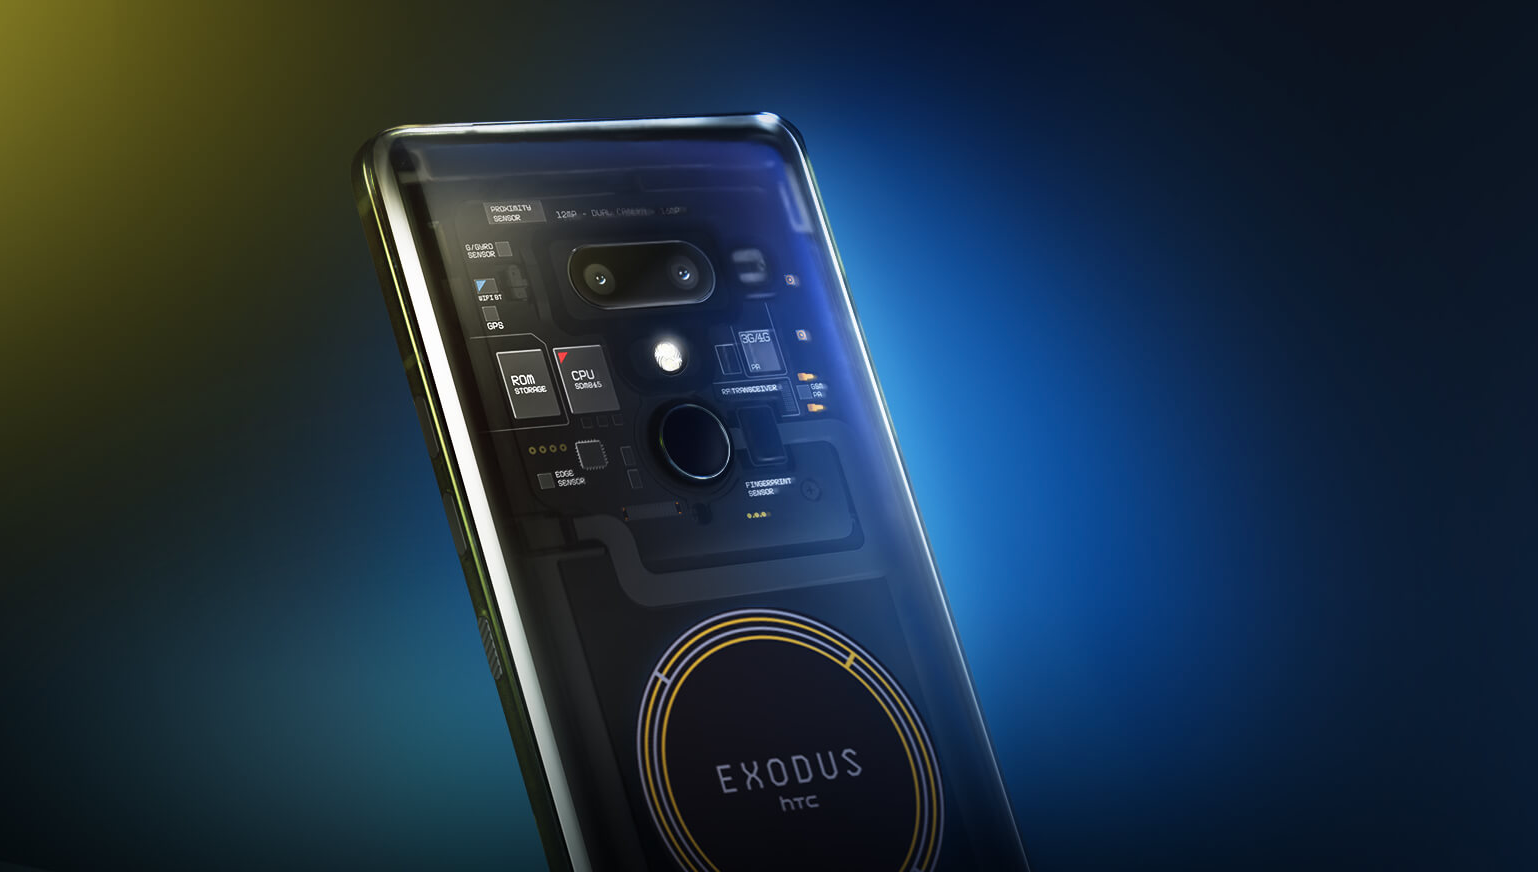 HTC EXODUS 1 Available for Pre-Order, Has Cryptocurrency